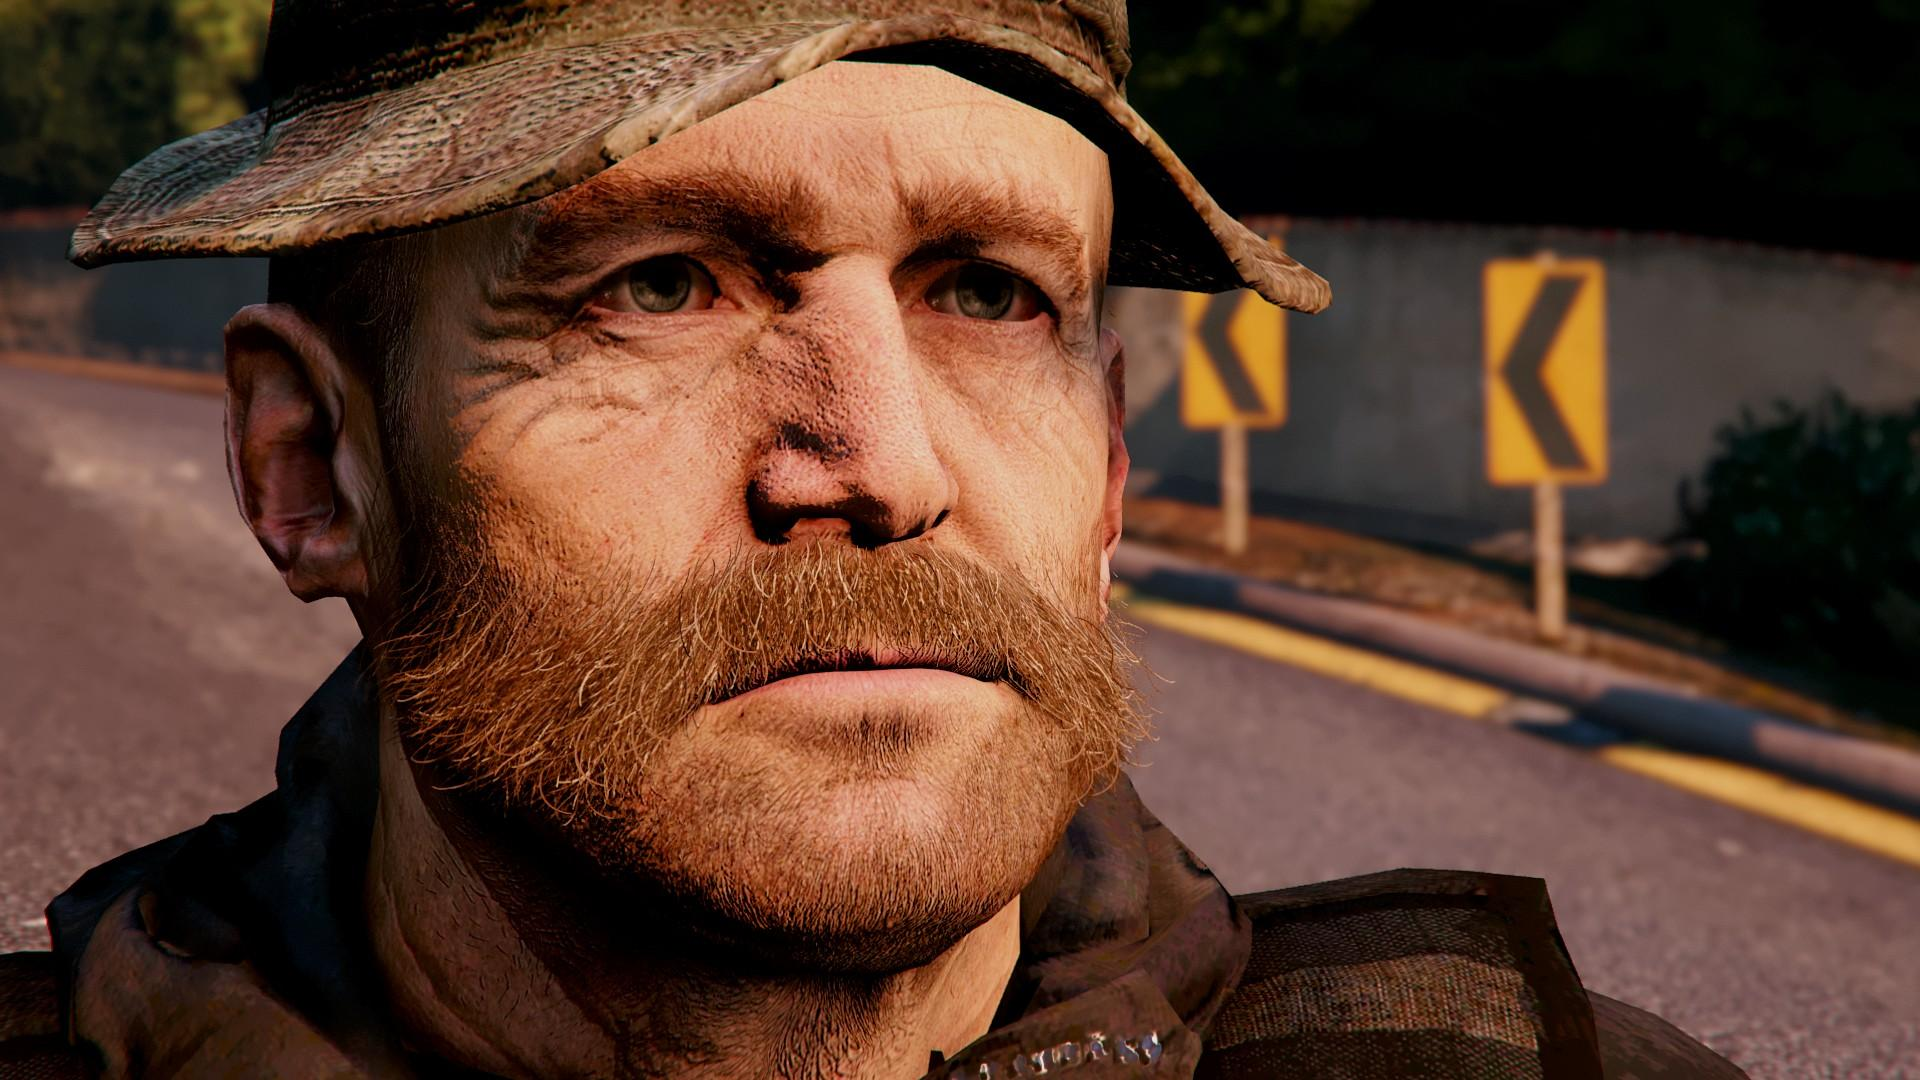 Cpt Price From CoD 4 Remastered Add On Replace GTA5